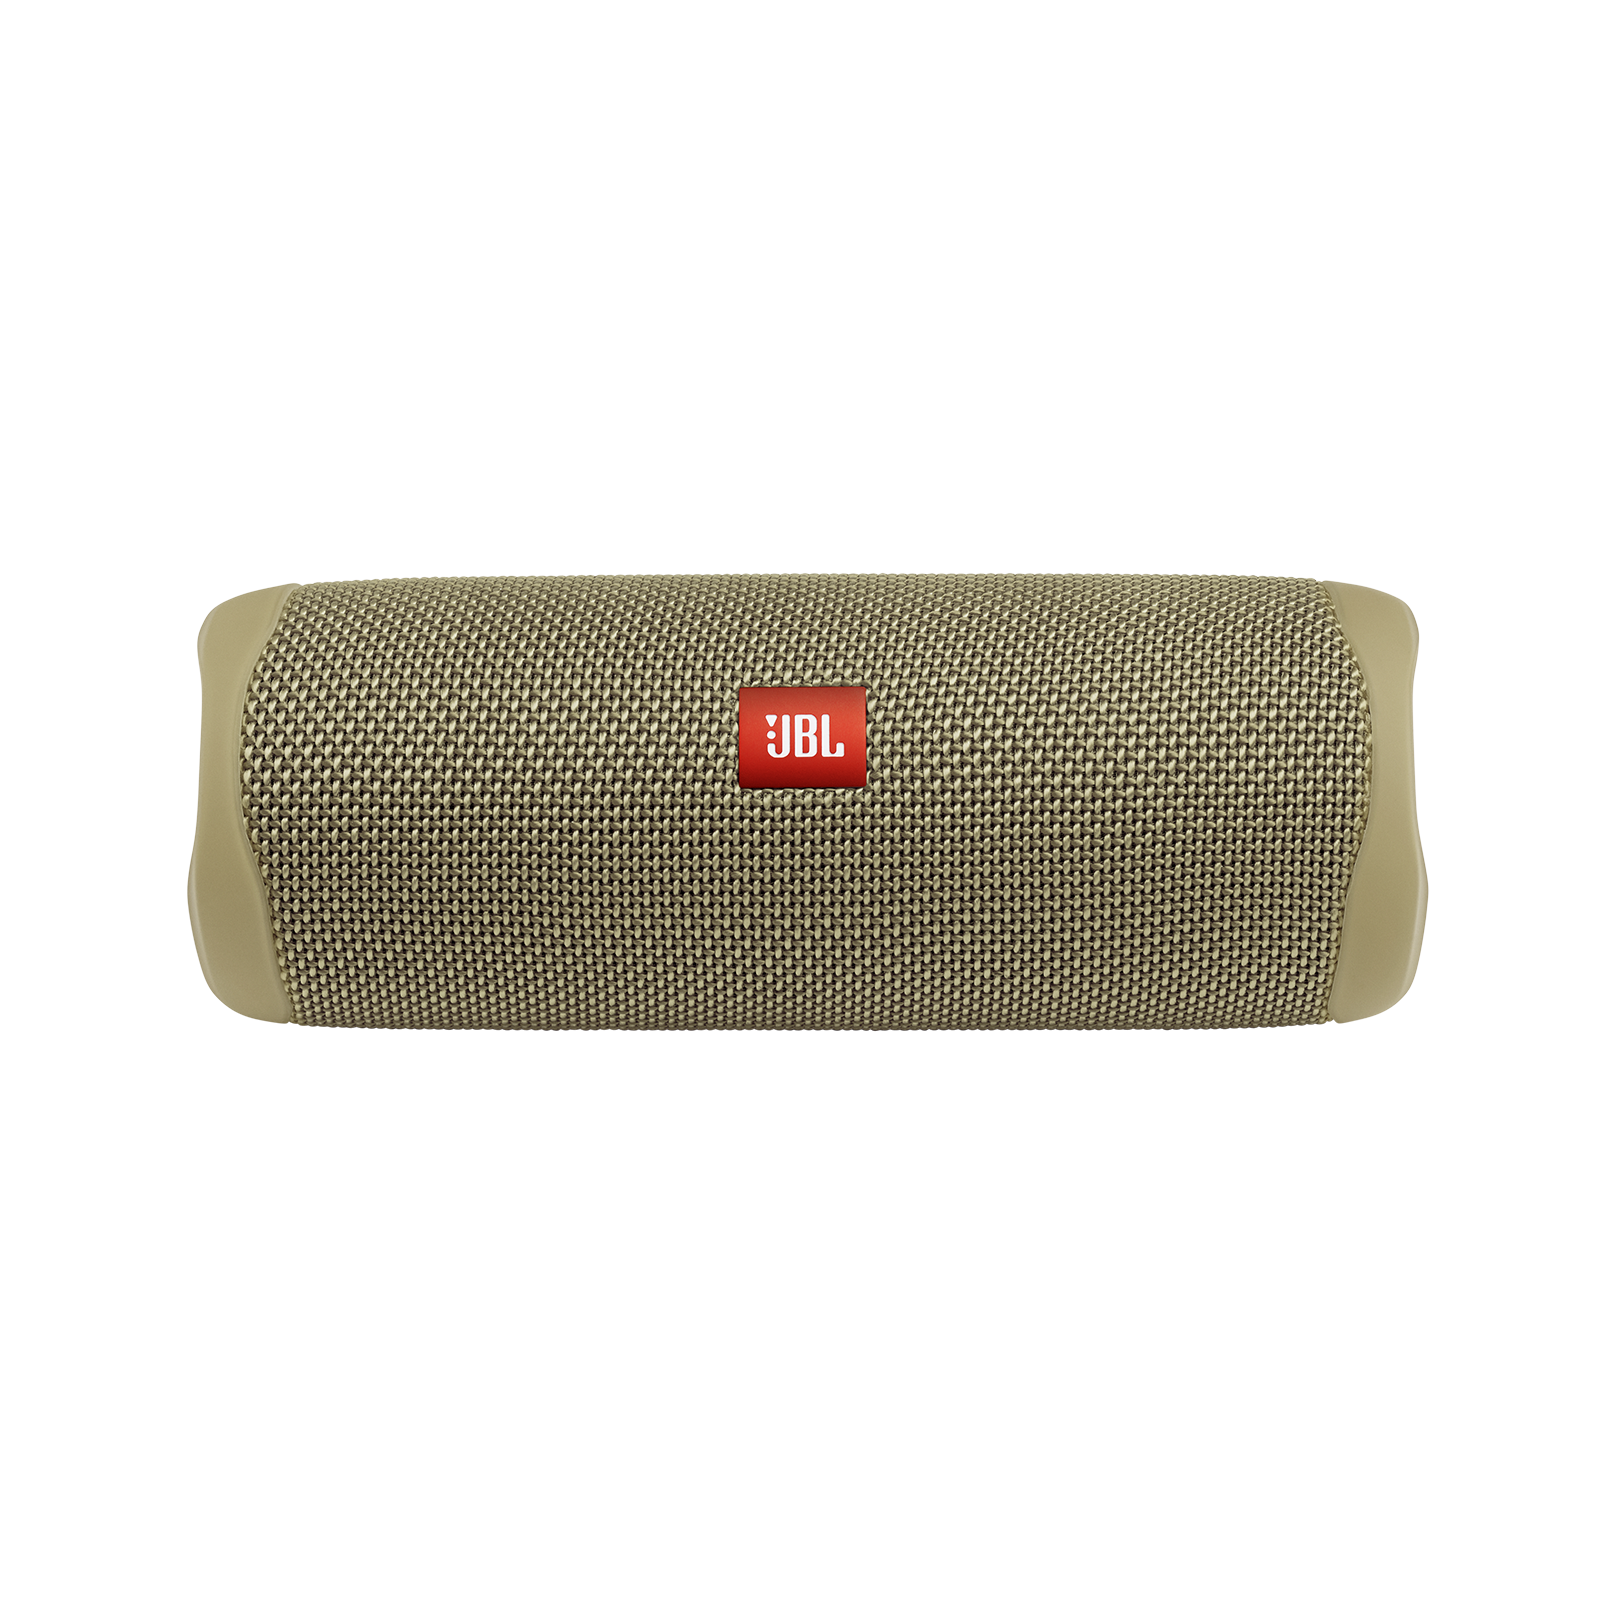 JBL FLIP 5 - Sand - Portable Waterproof Speaker - Front